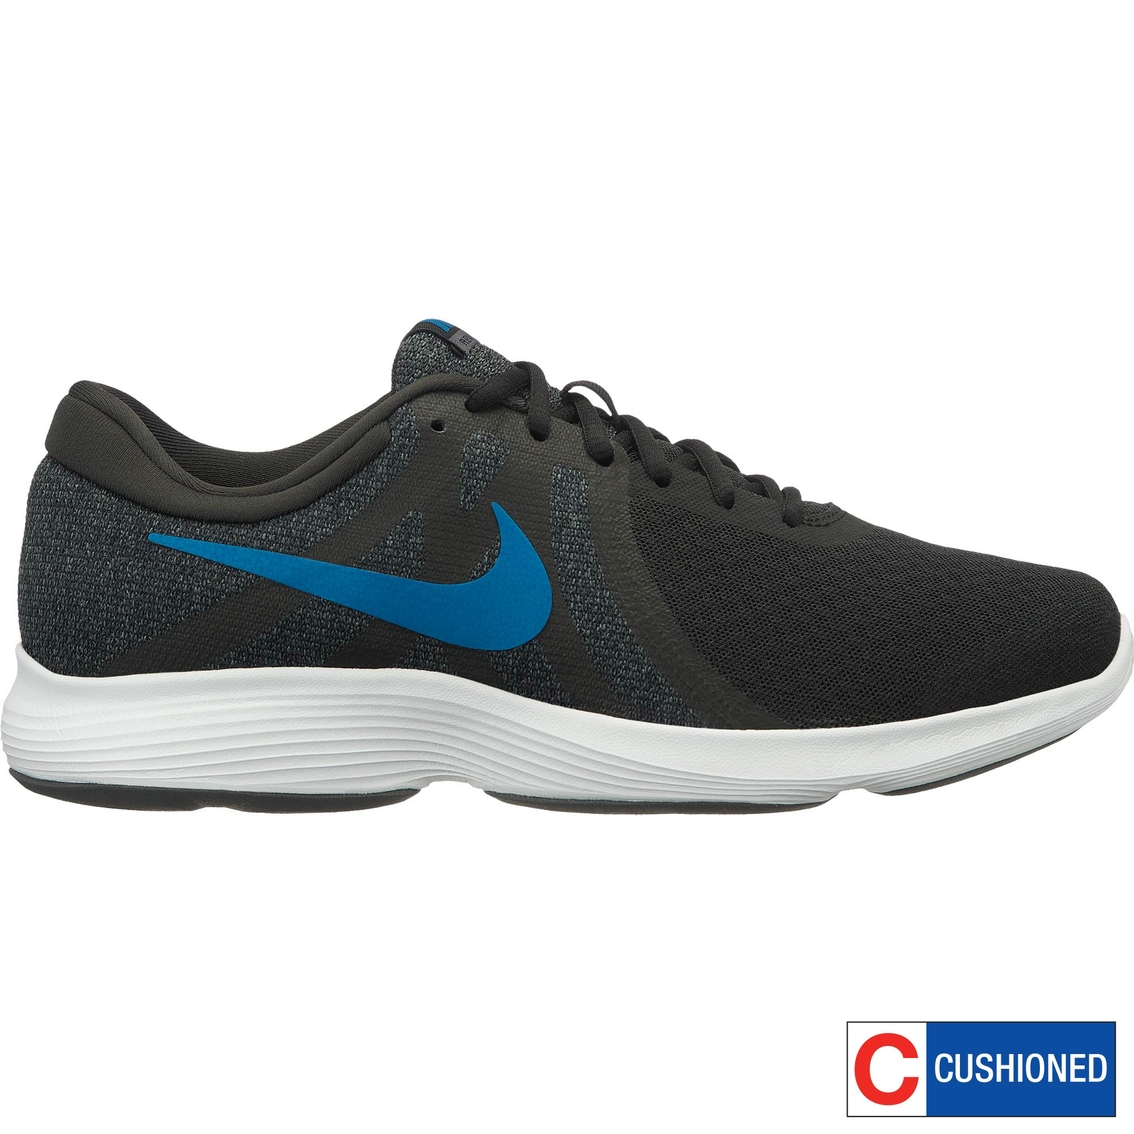 126de170d44d Nike Men s Revolution 4 Running Shoes